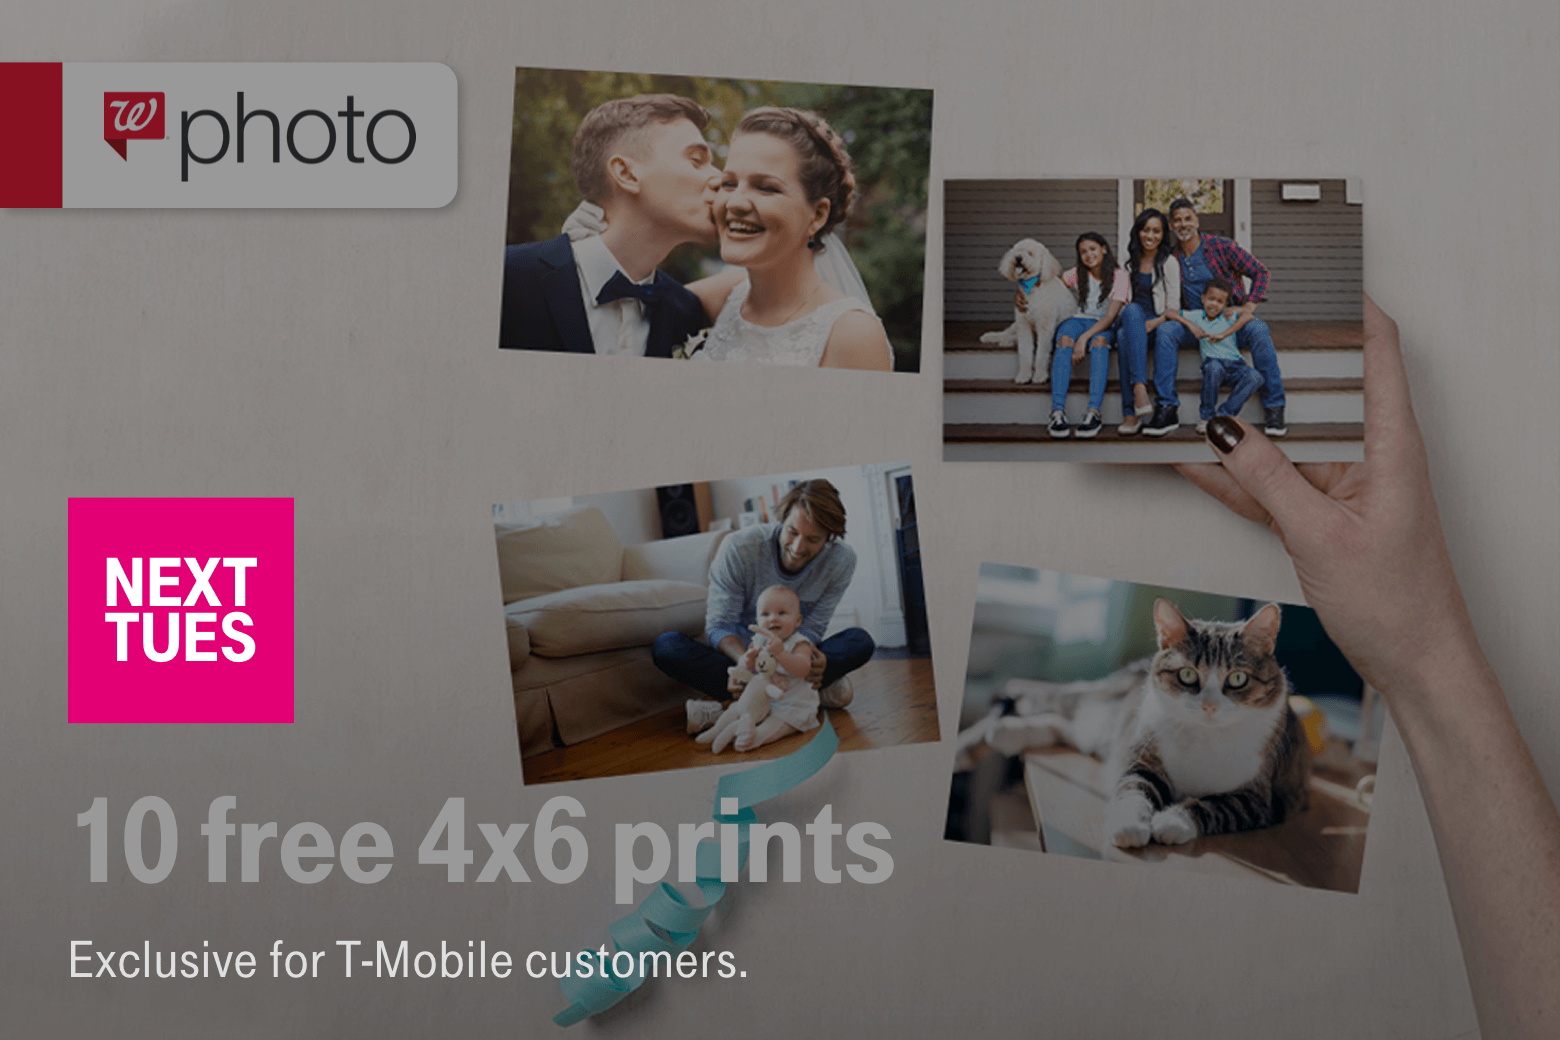 Walgreens. Next Tues. 10 free 4x6 prints. Exclusive for T-Mobile customers.